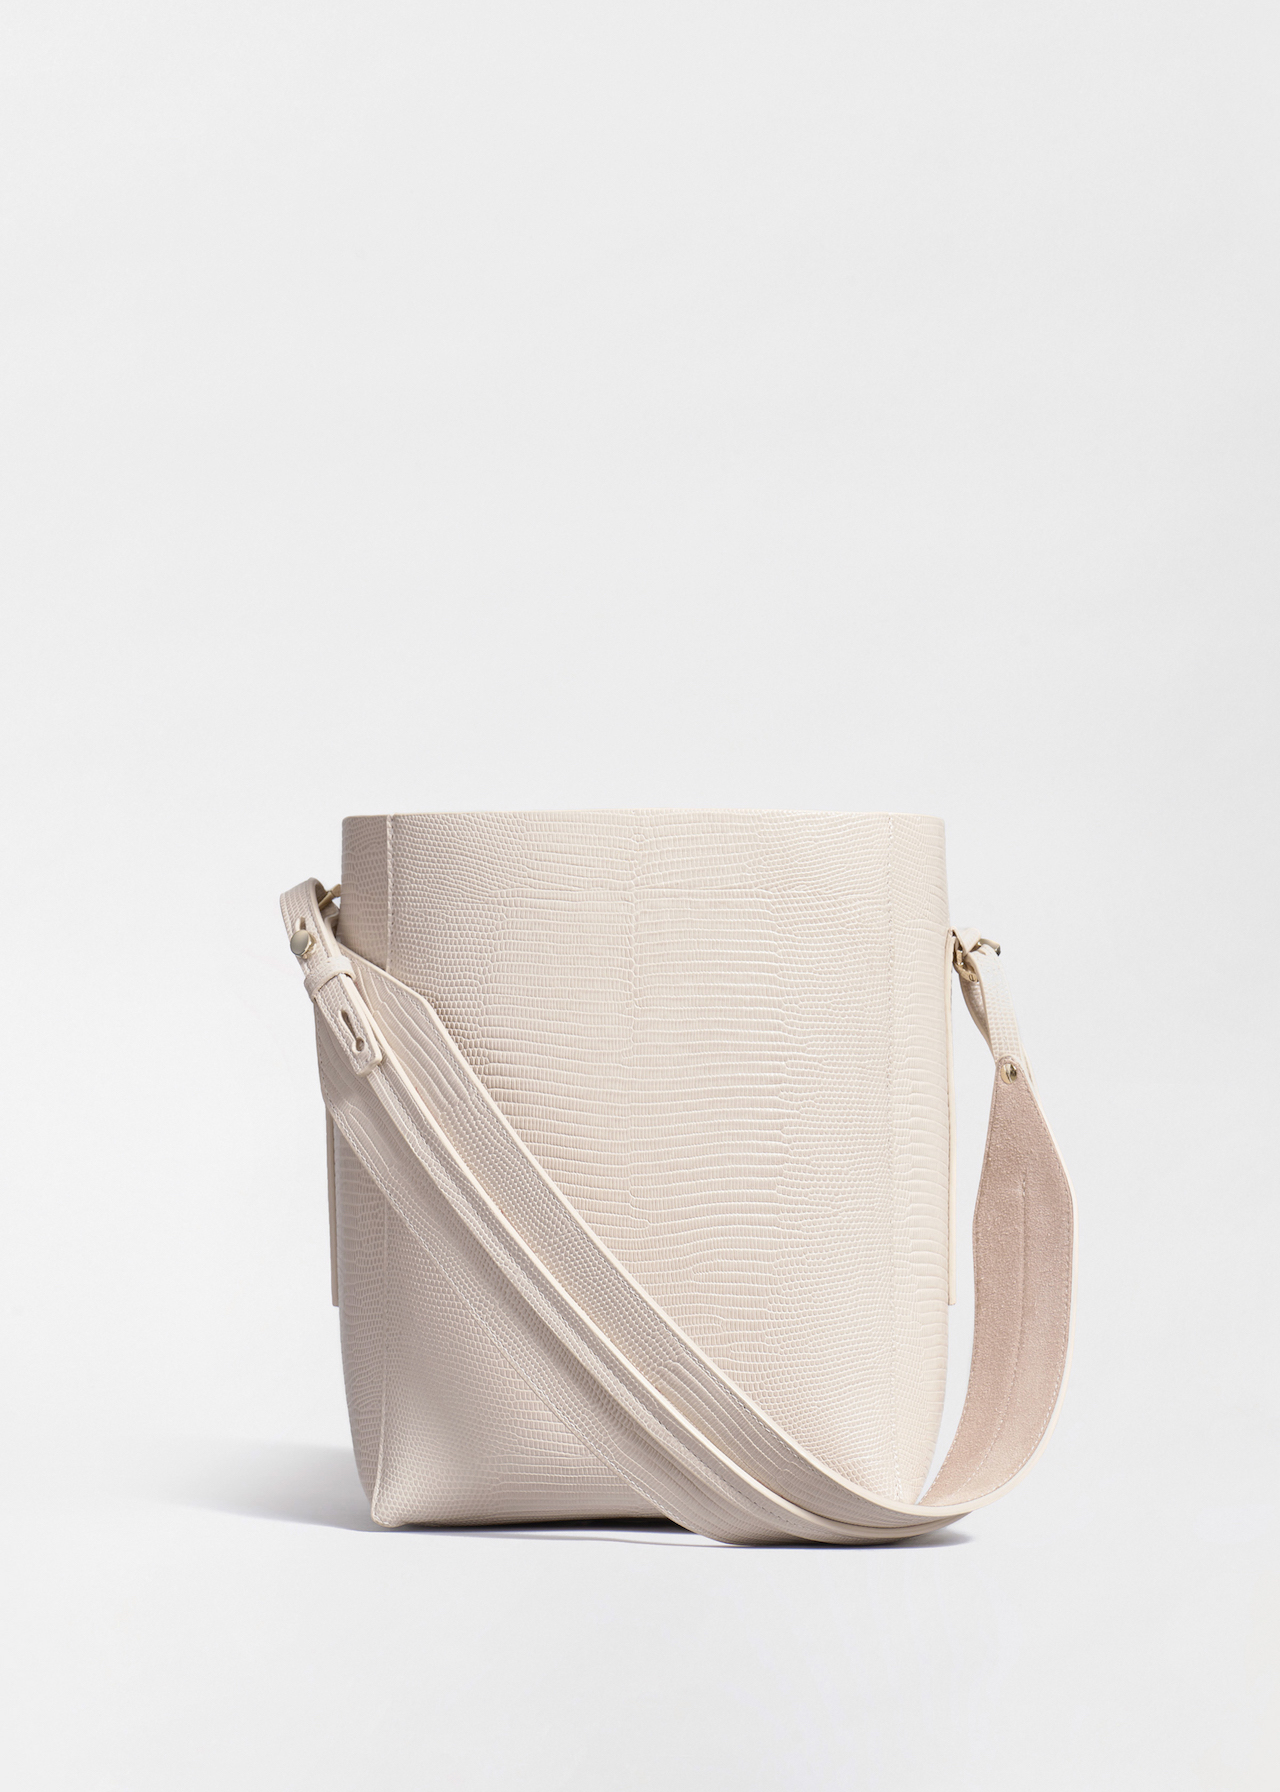 Small Bucket Bag in Embossed Leather - Sand - Co Collections